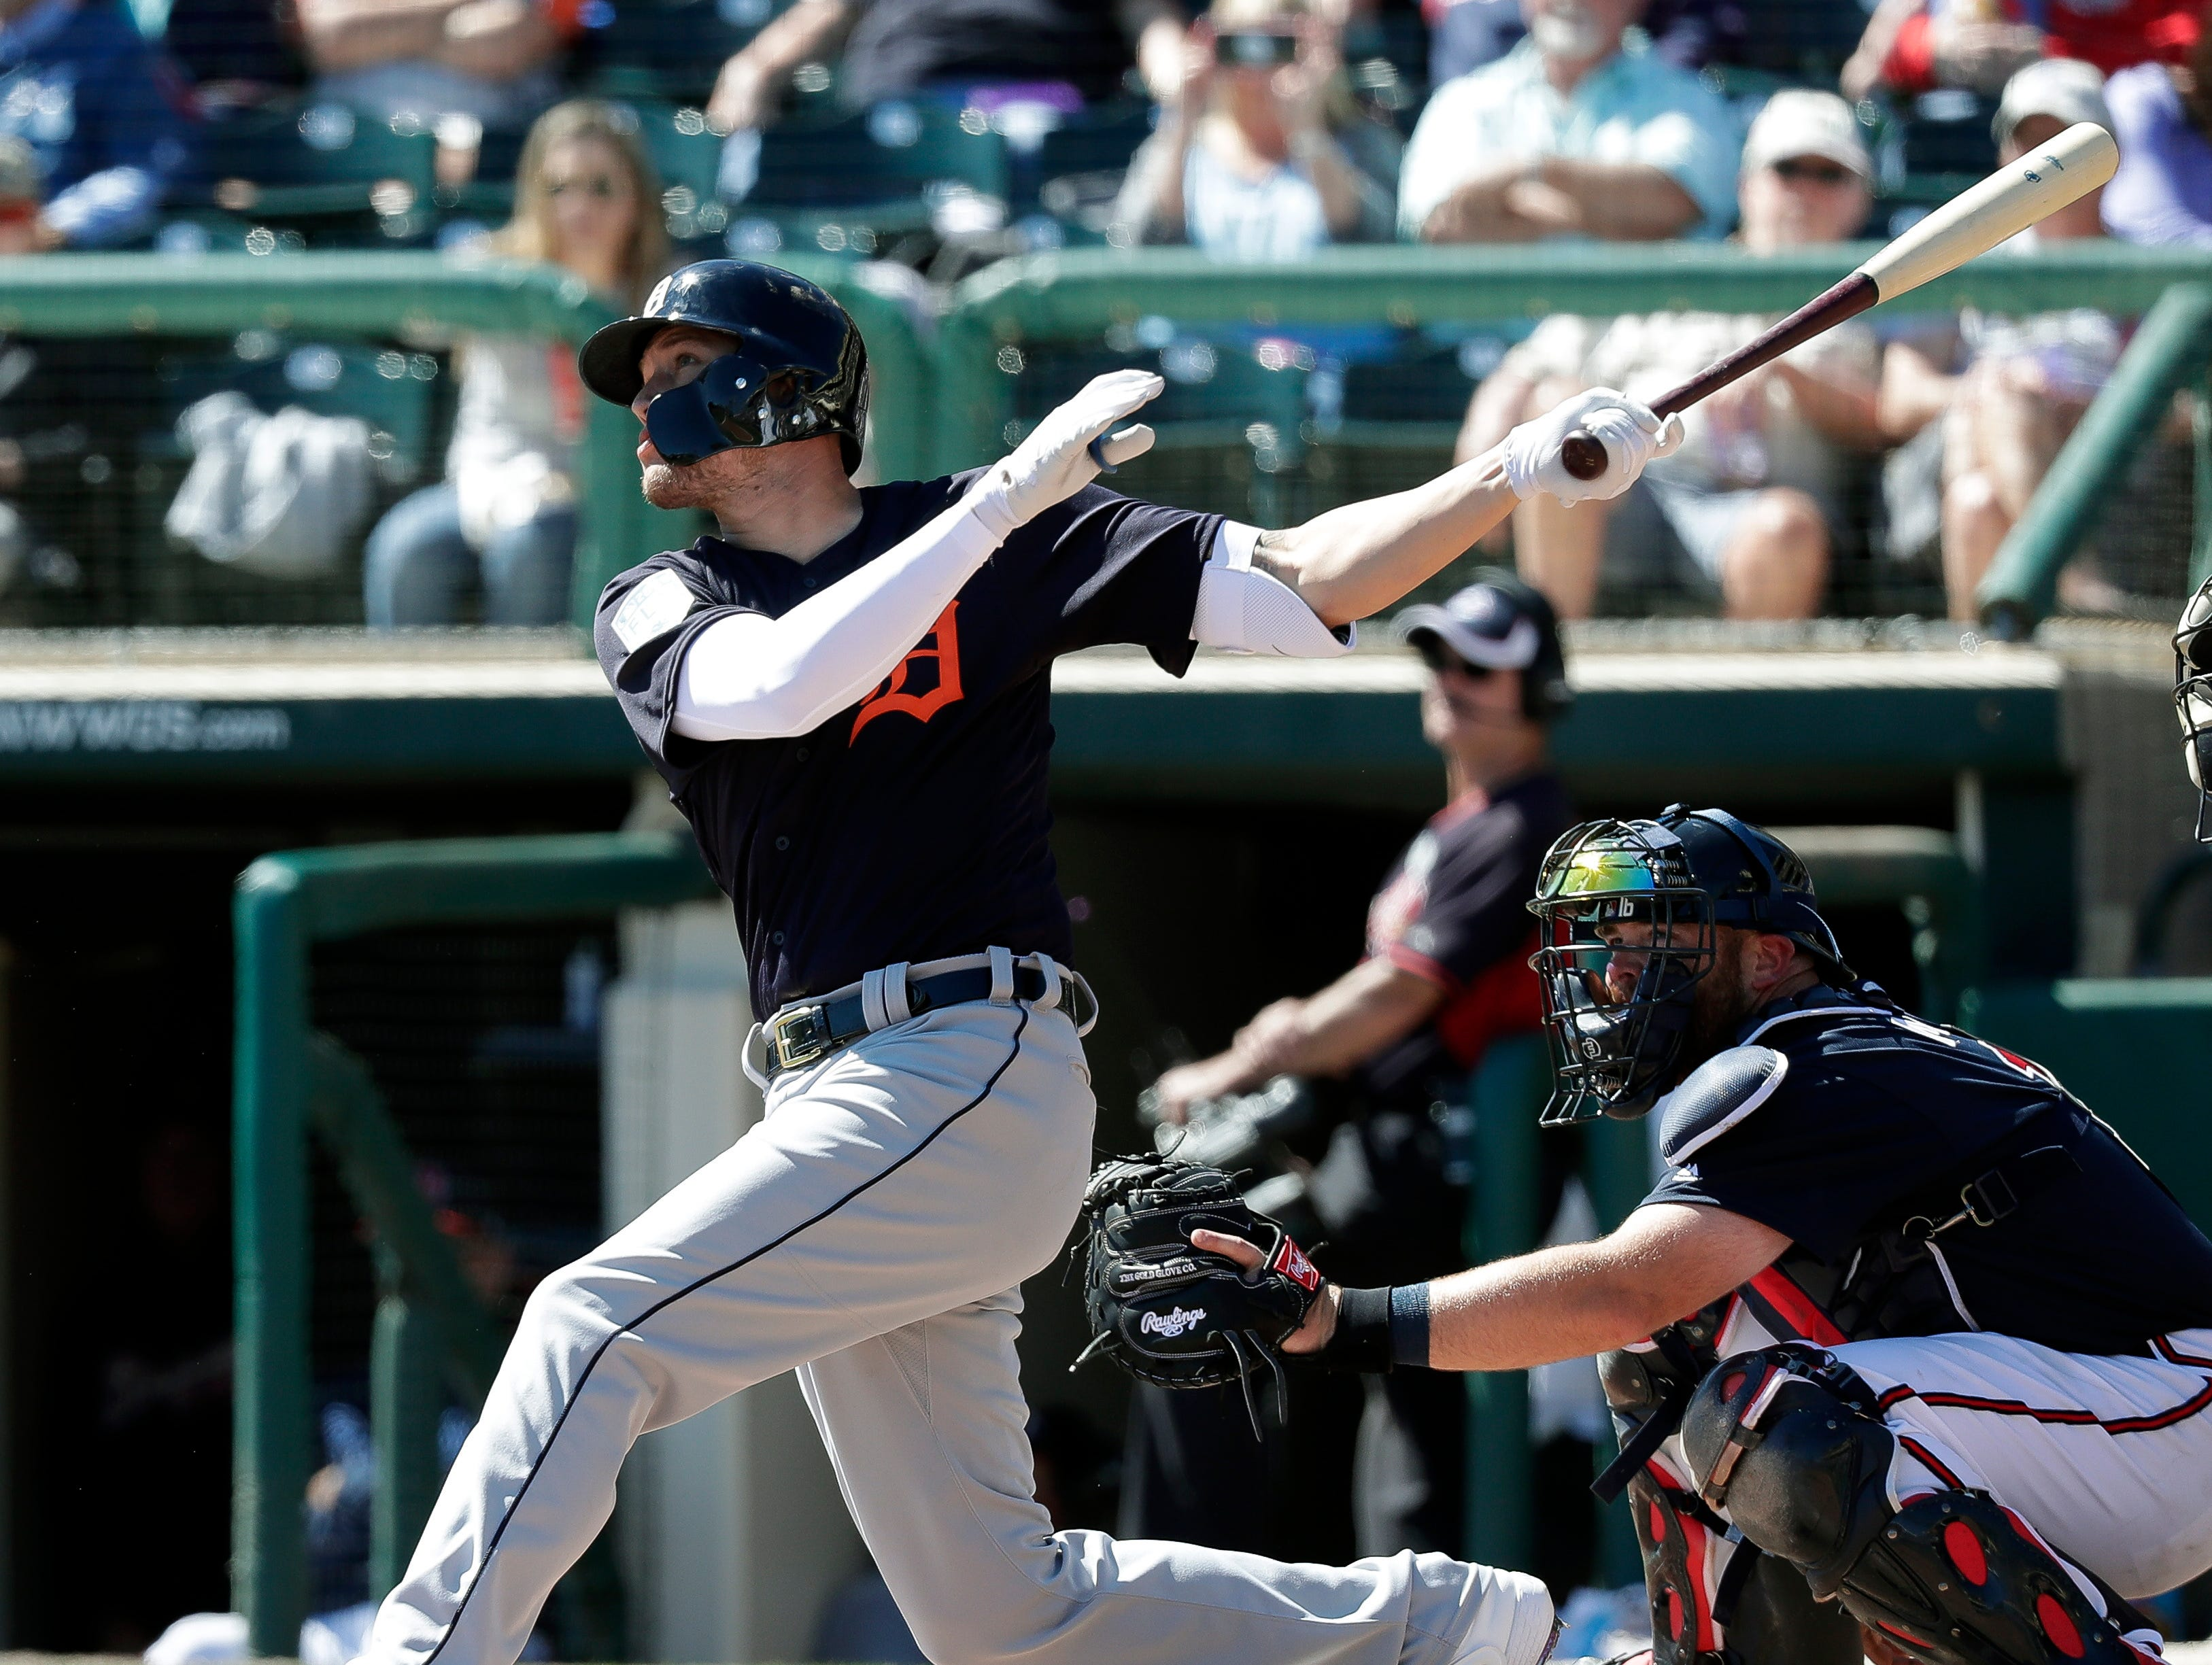 Detroit Tigers' JaCoby Jones hits a solo home run against the Atlanta Braves in the fourth inning of a spring baseball exhibition game, Wednesday, March 6, 2019, in Kissimmee, Fla.